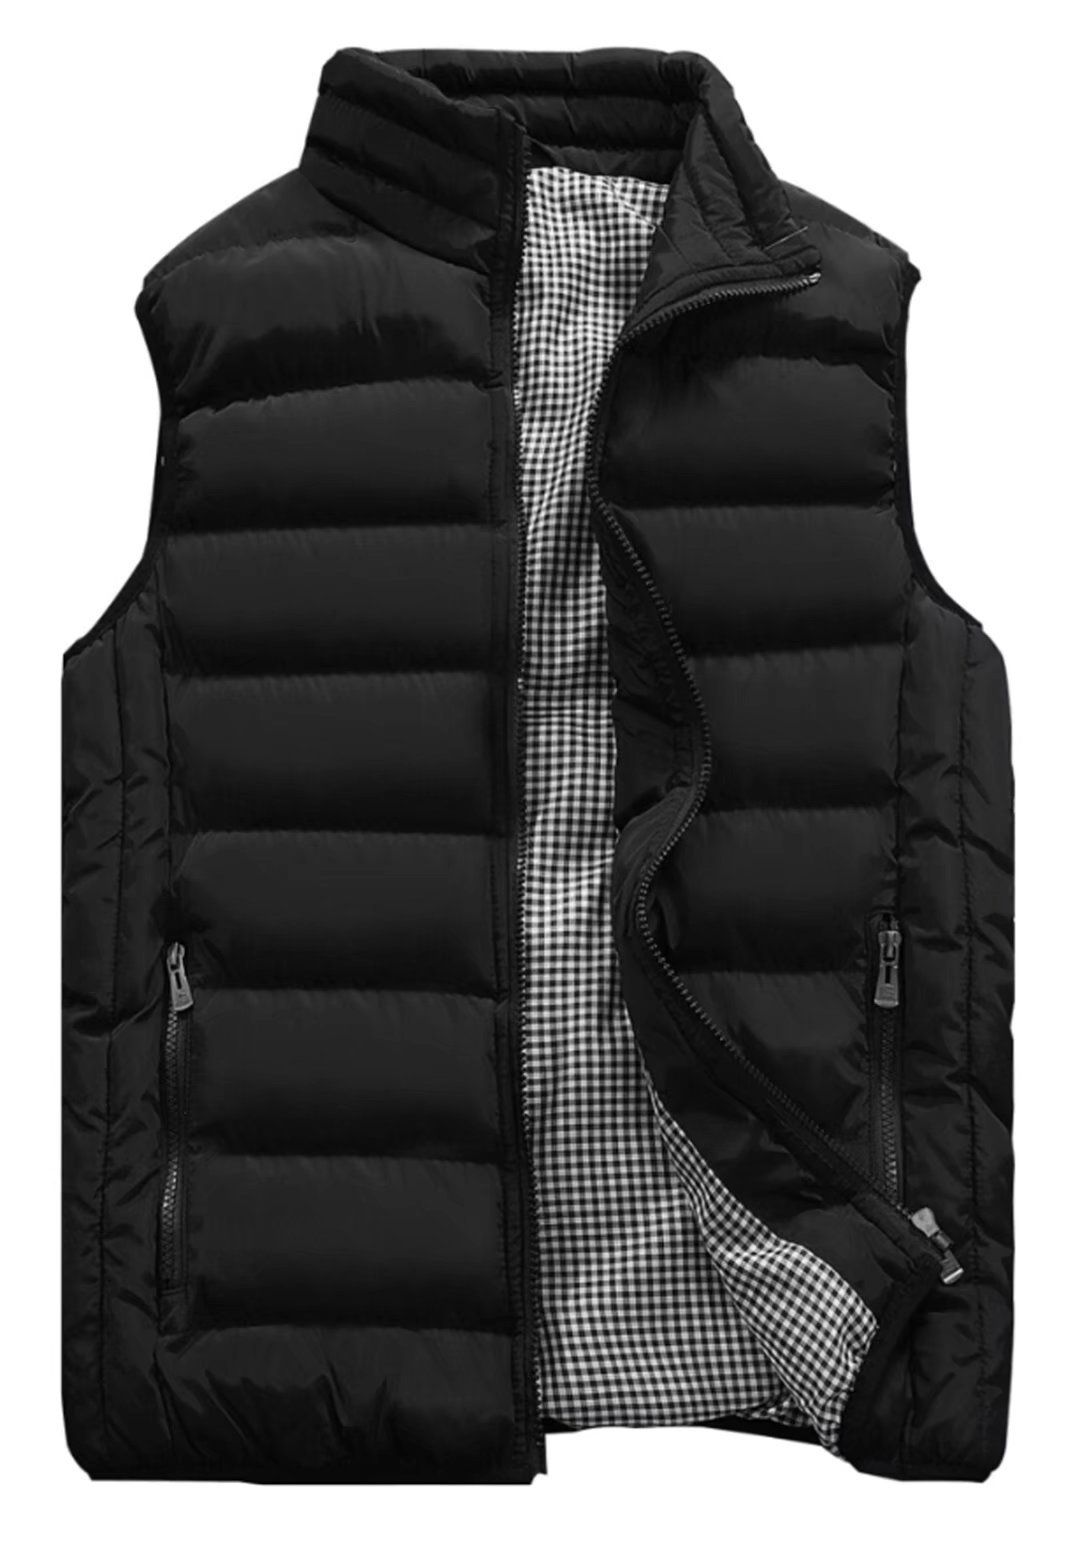 HOW'ON Men's Outdoor Casual Classic Quilted Vest Black XL by HOW'ON